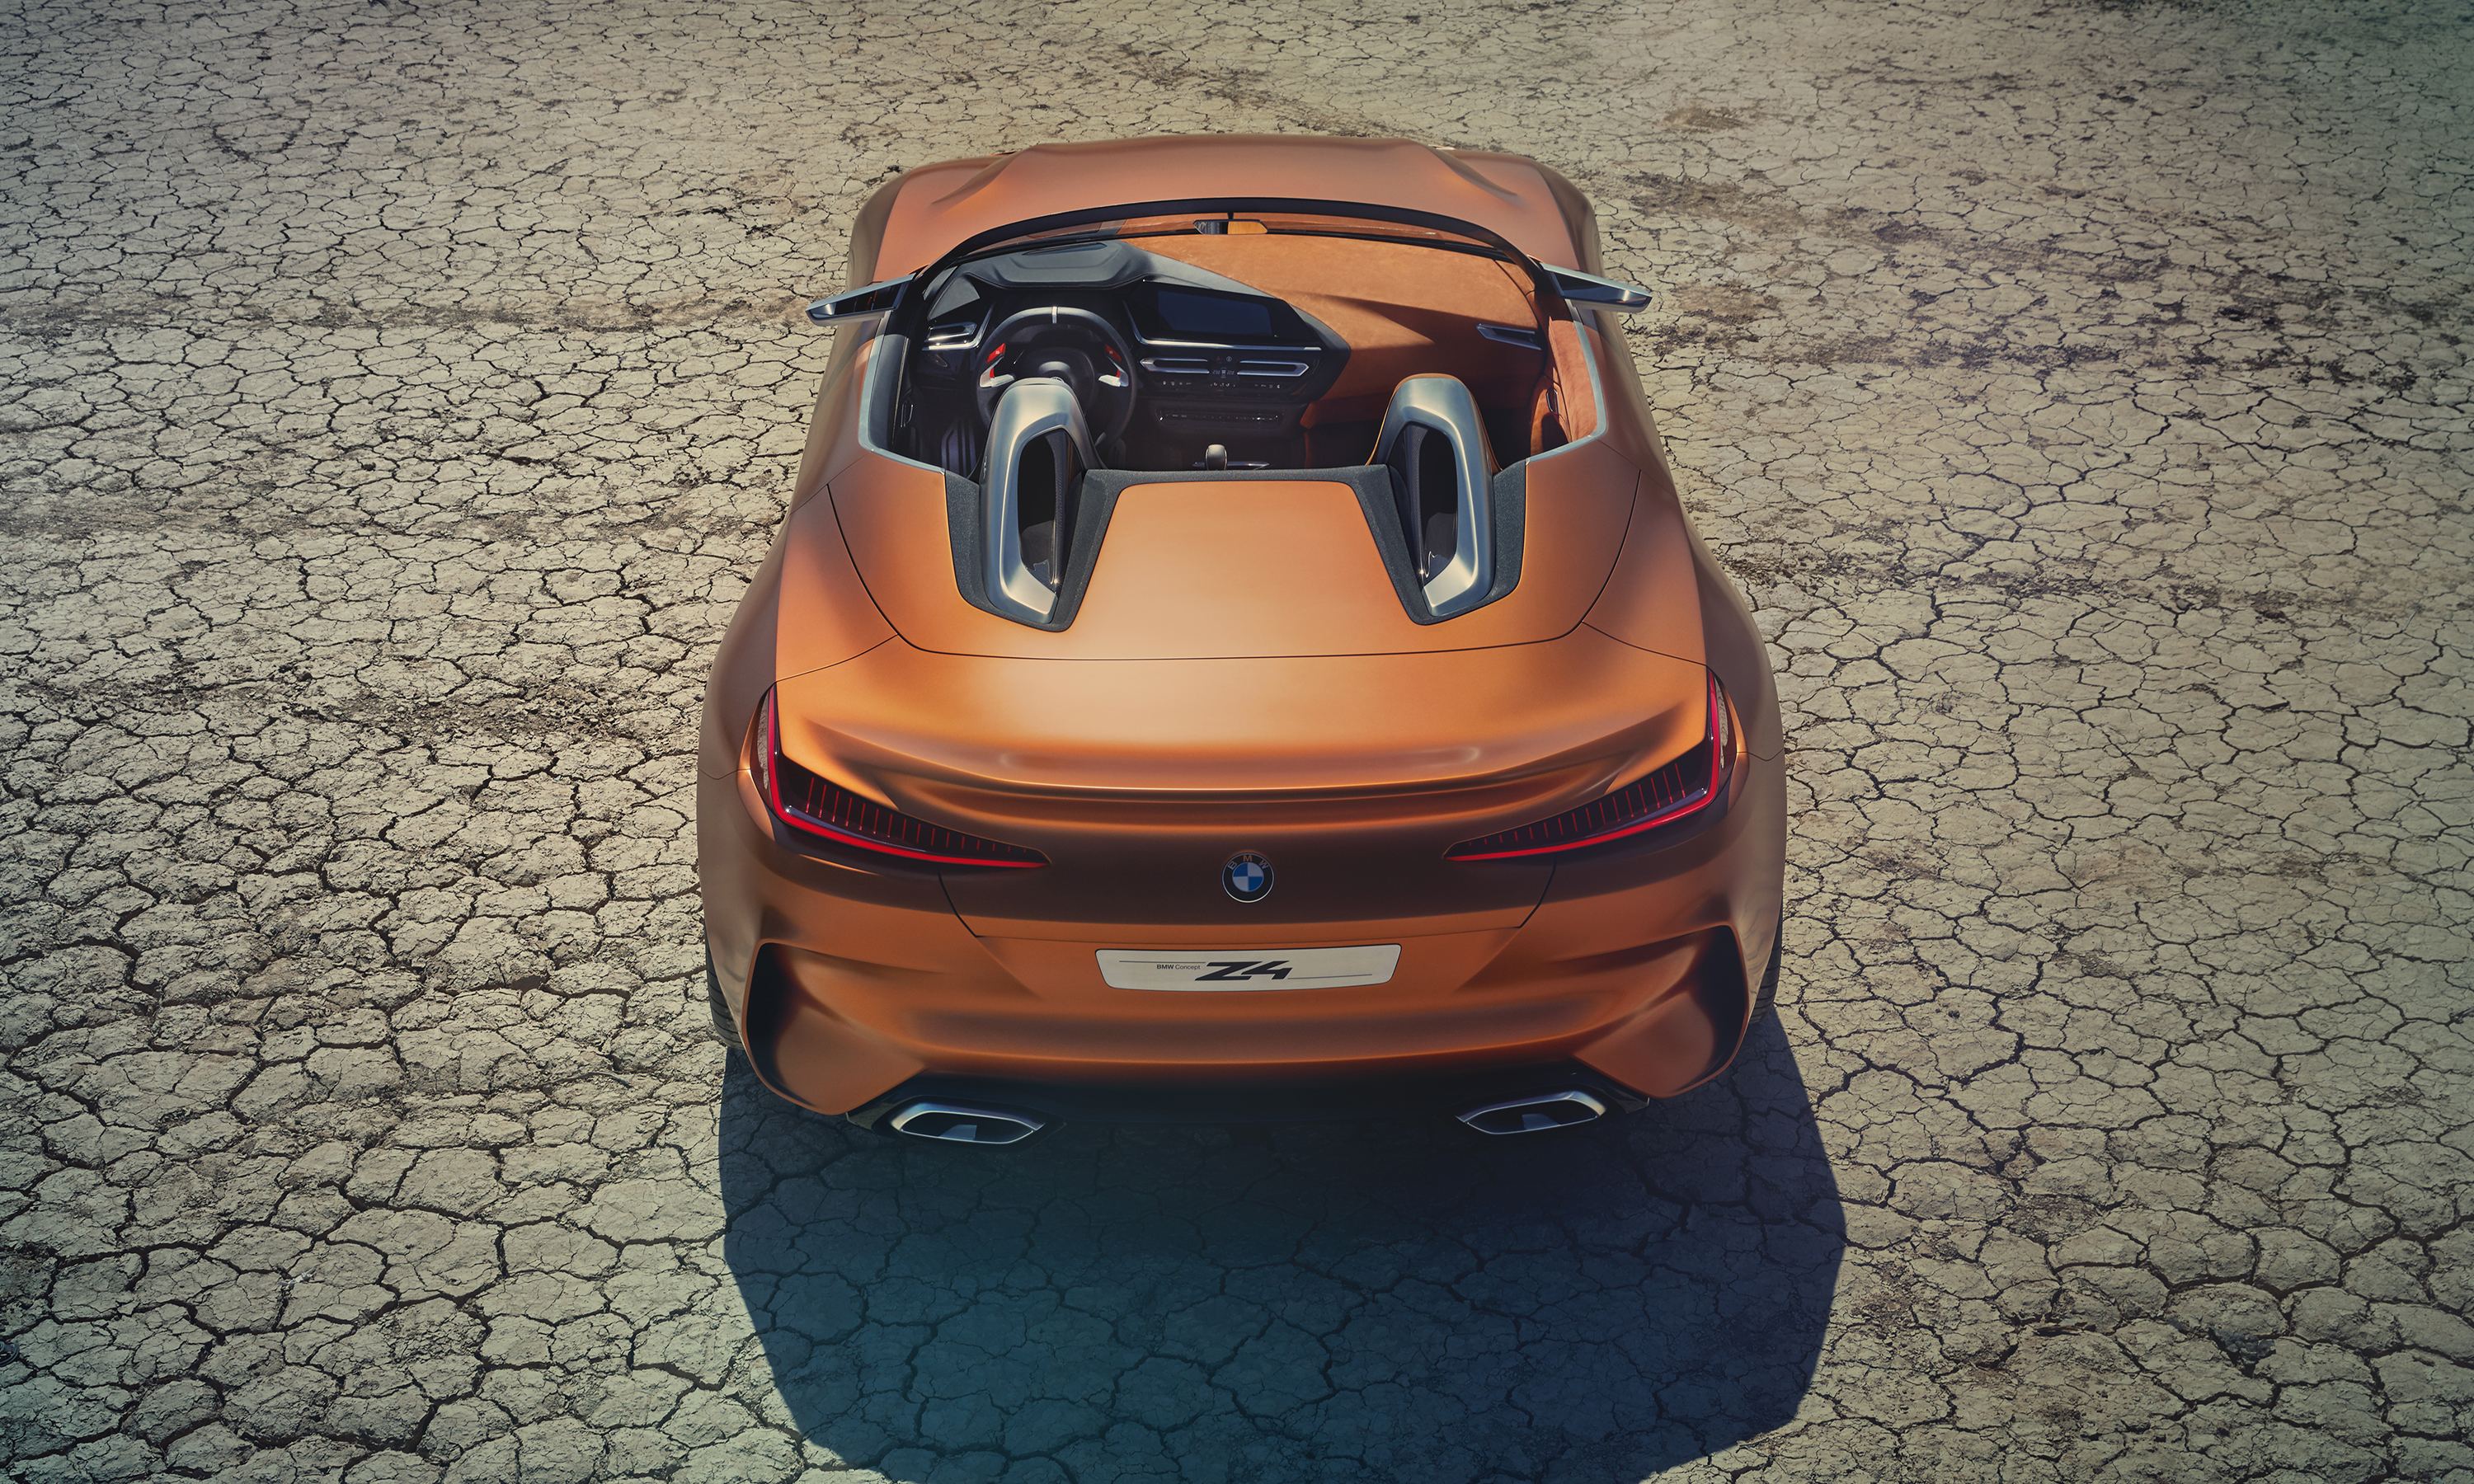 2018 Bmw Z4 New Generation Roadster Previewed For Pebble